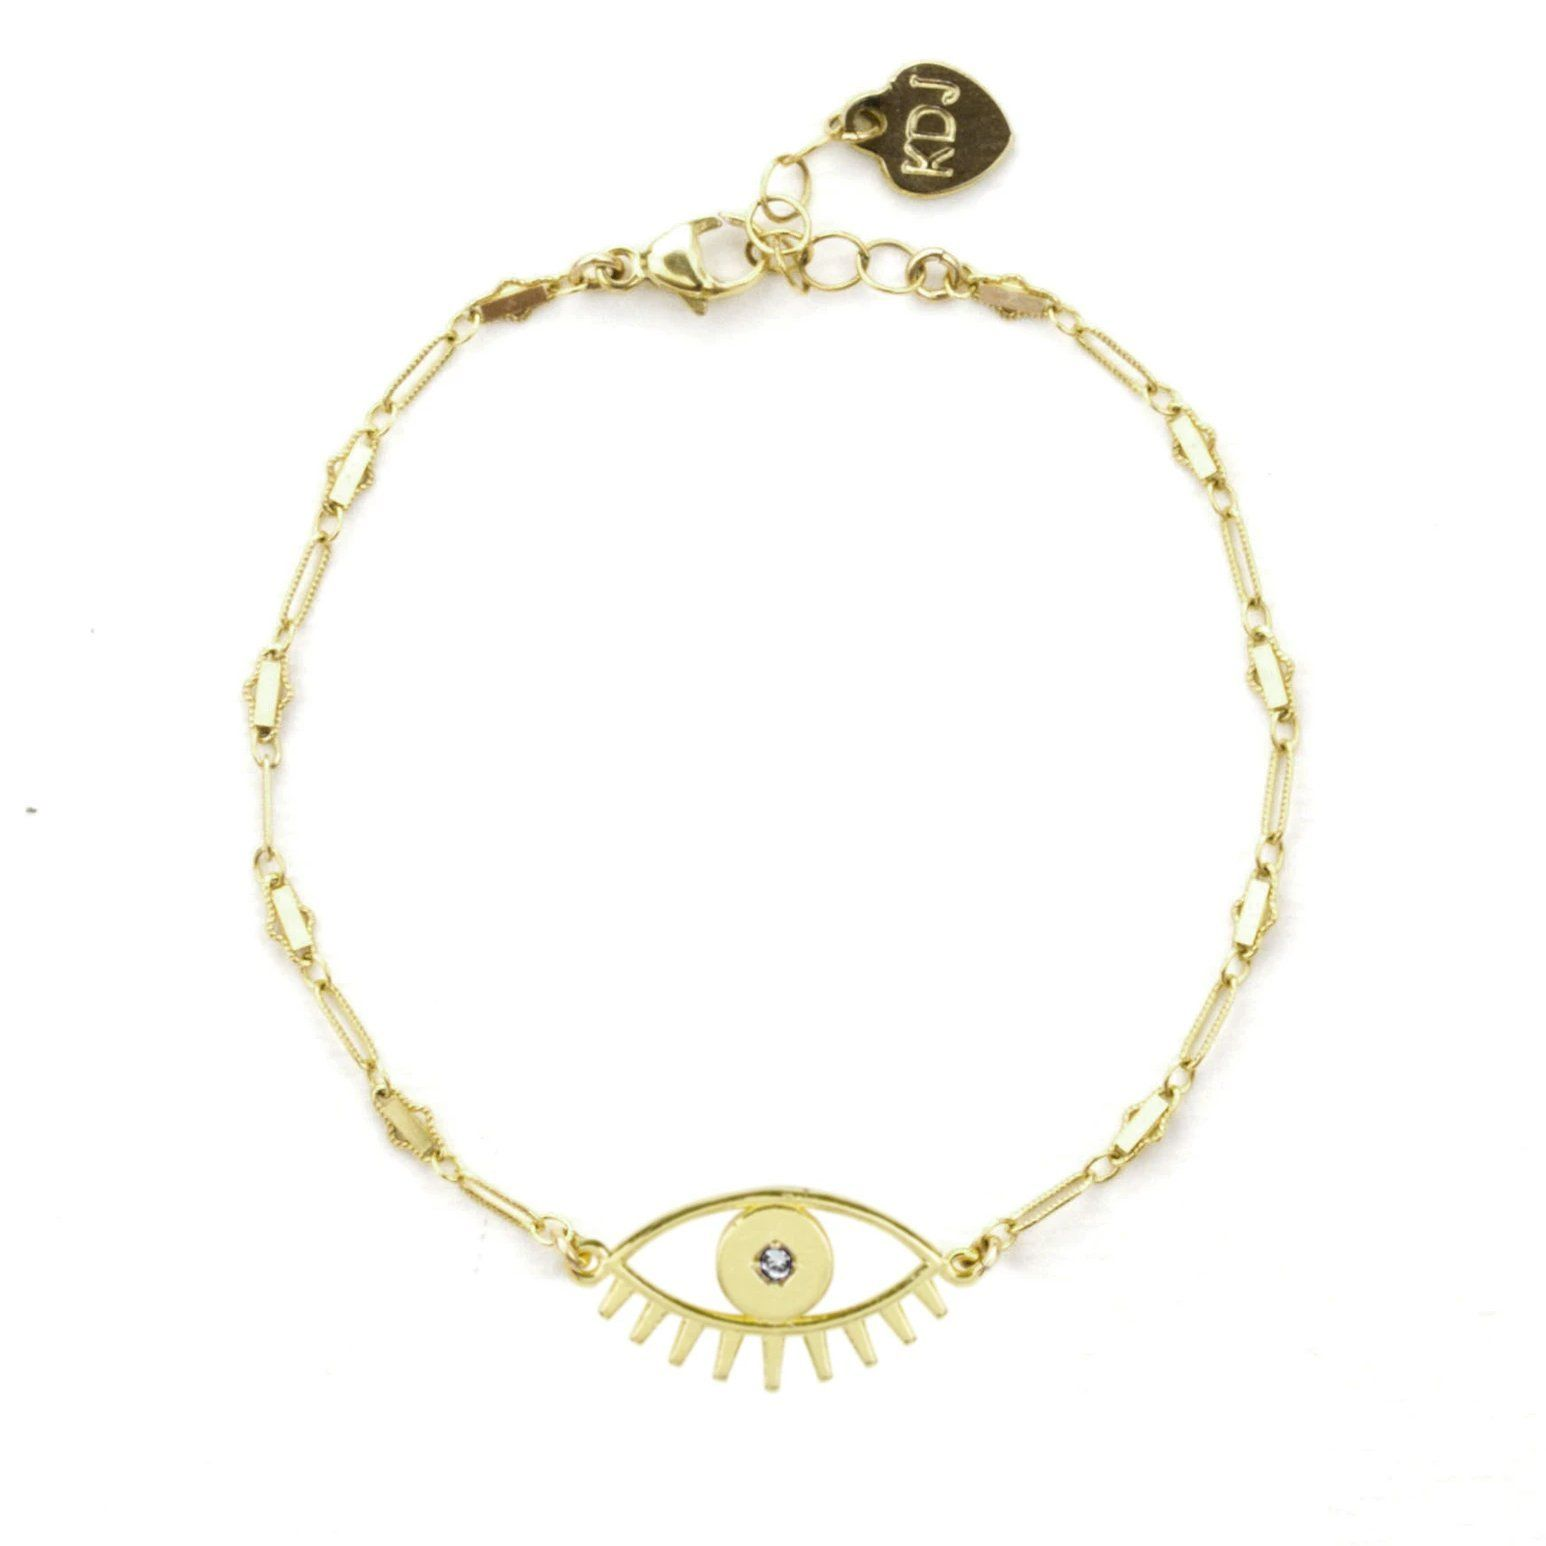 Up close image of the gold Evil Eye Bracelet against a white background.